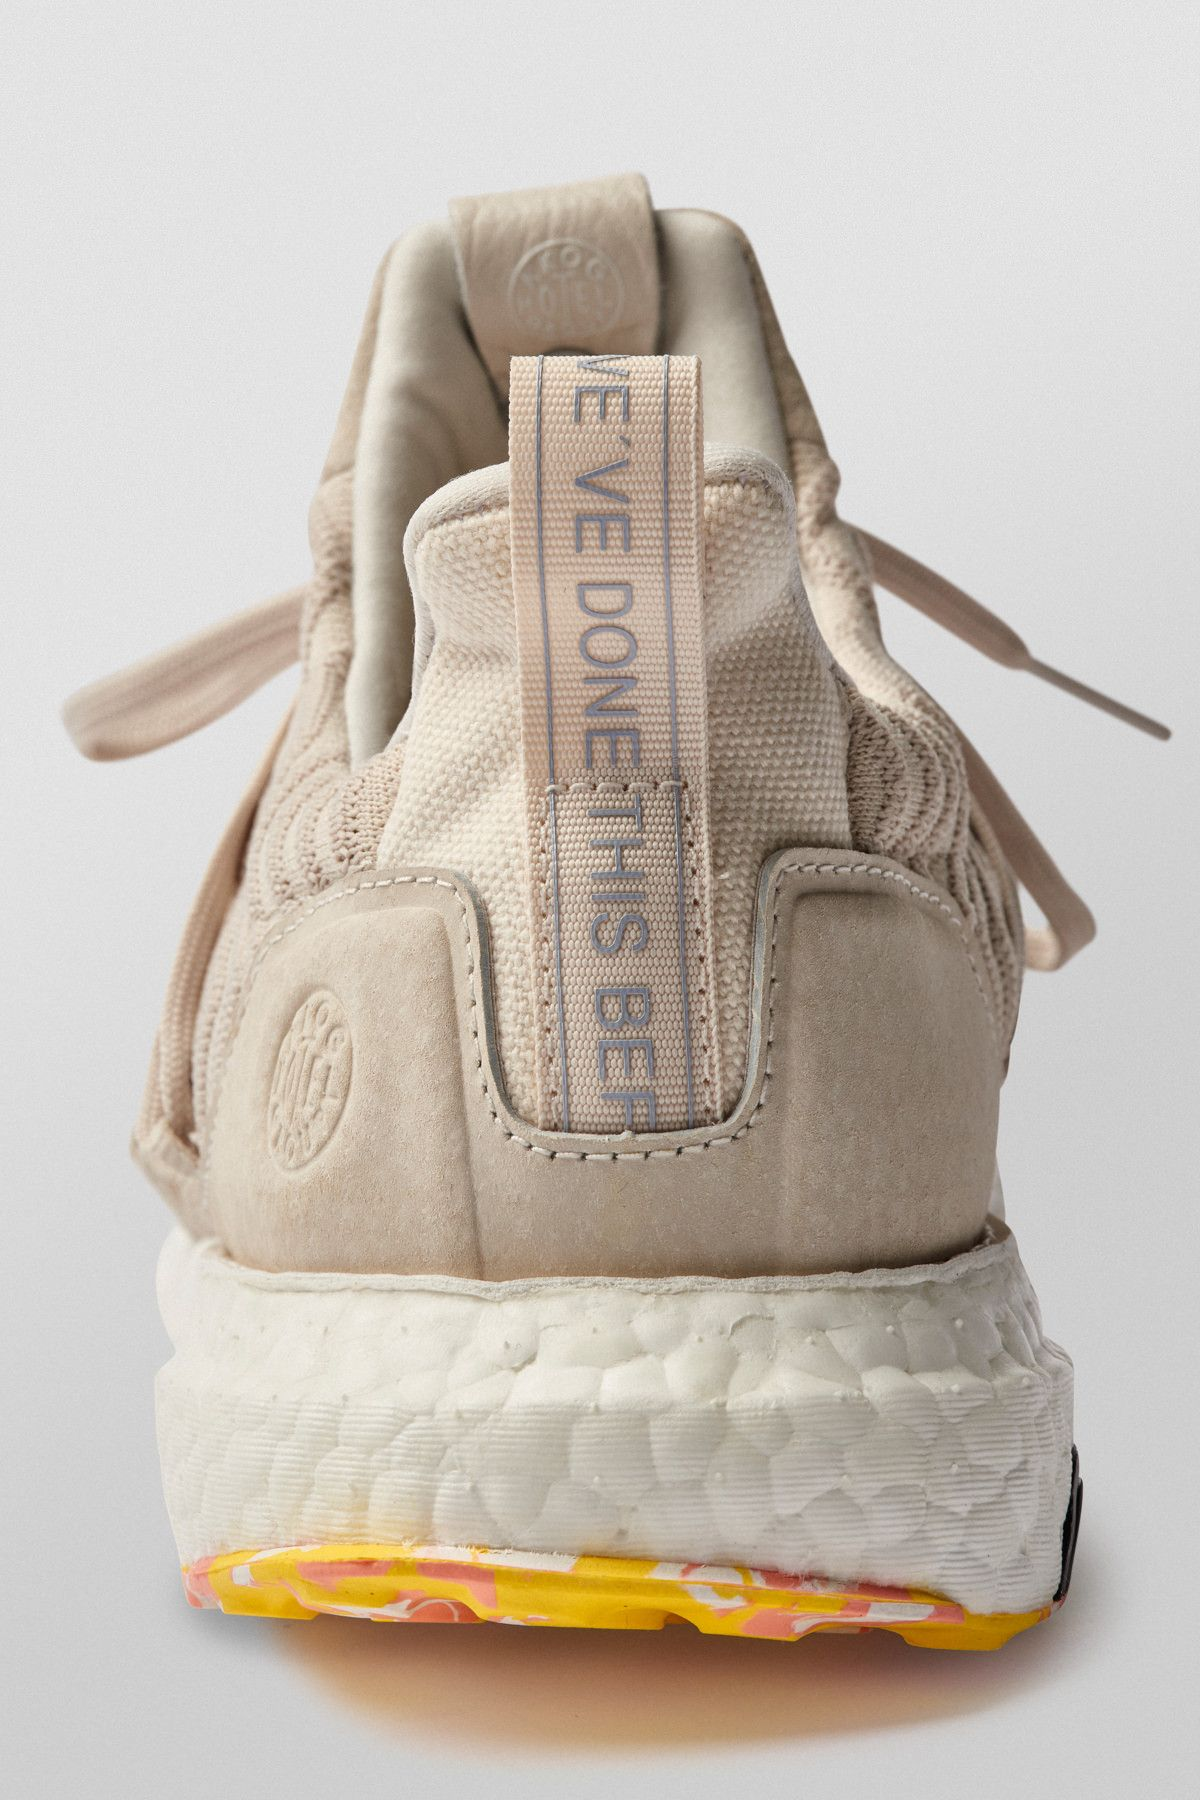 3907f57f02958 A Kind of Guise x adidas Consortium 聯乘 UltraBOOST 正式發布 ...